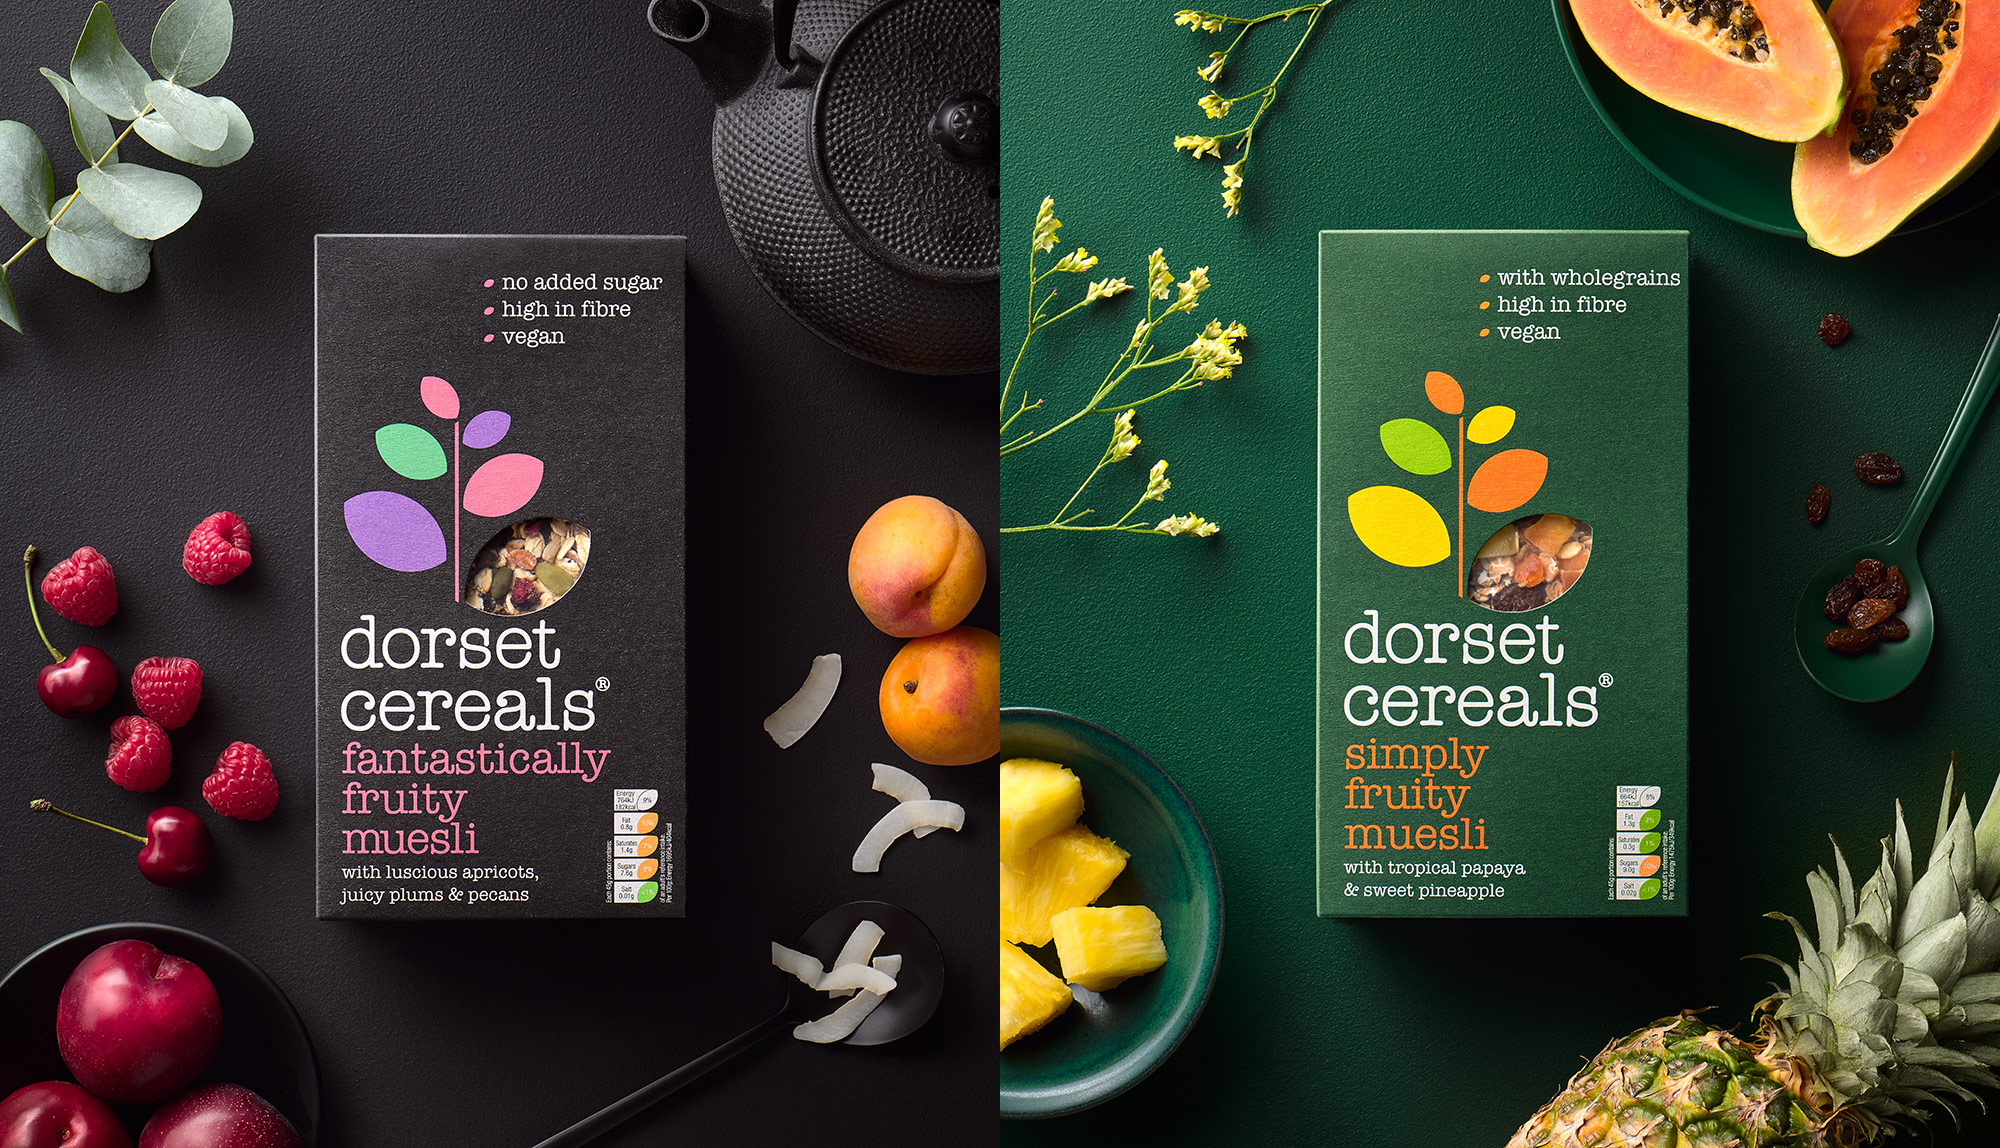 Dorset Cereals fantastically fruity and simply fruity muesli pack photography